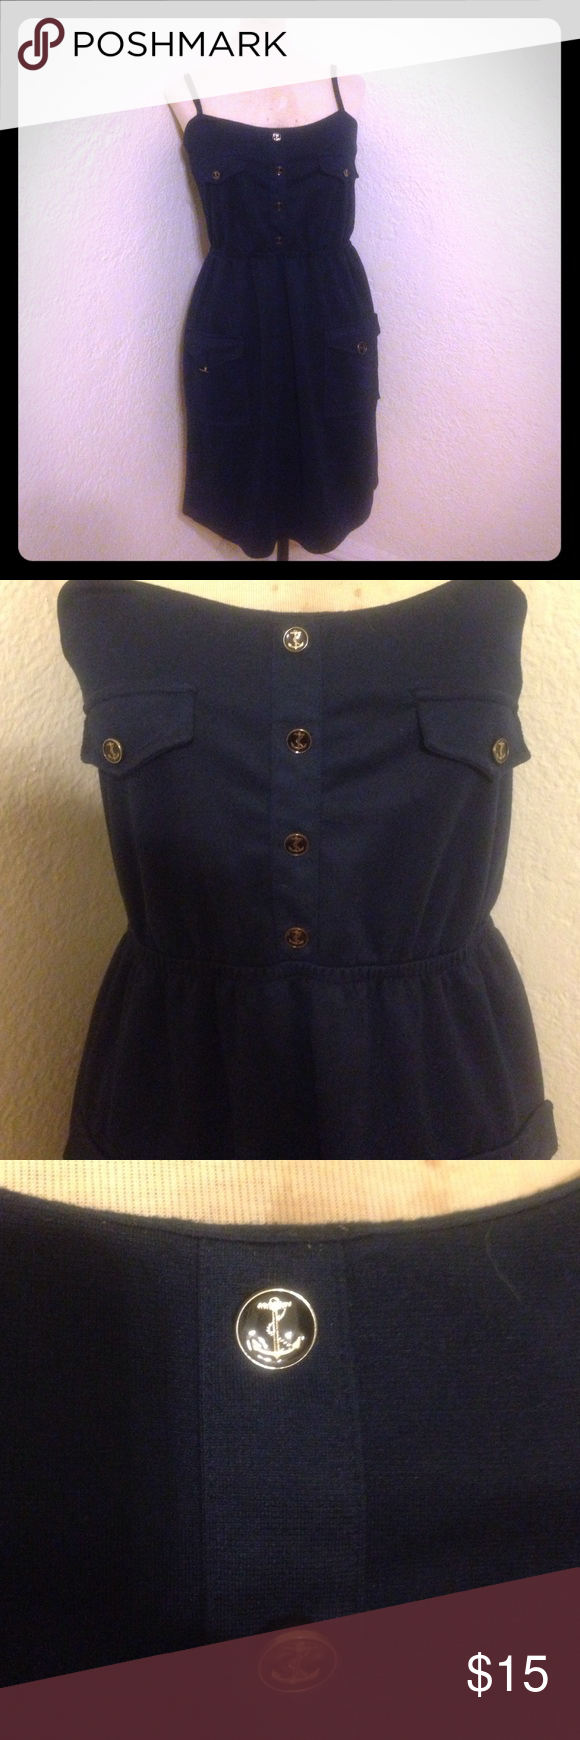 Delia's navy anchor dress So cute! Material 70% polyester 18% rayon 5% spandex bust 32 Waist 28 hips 38 Delia's Dresses